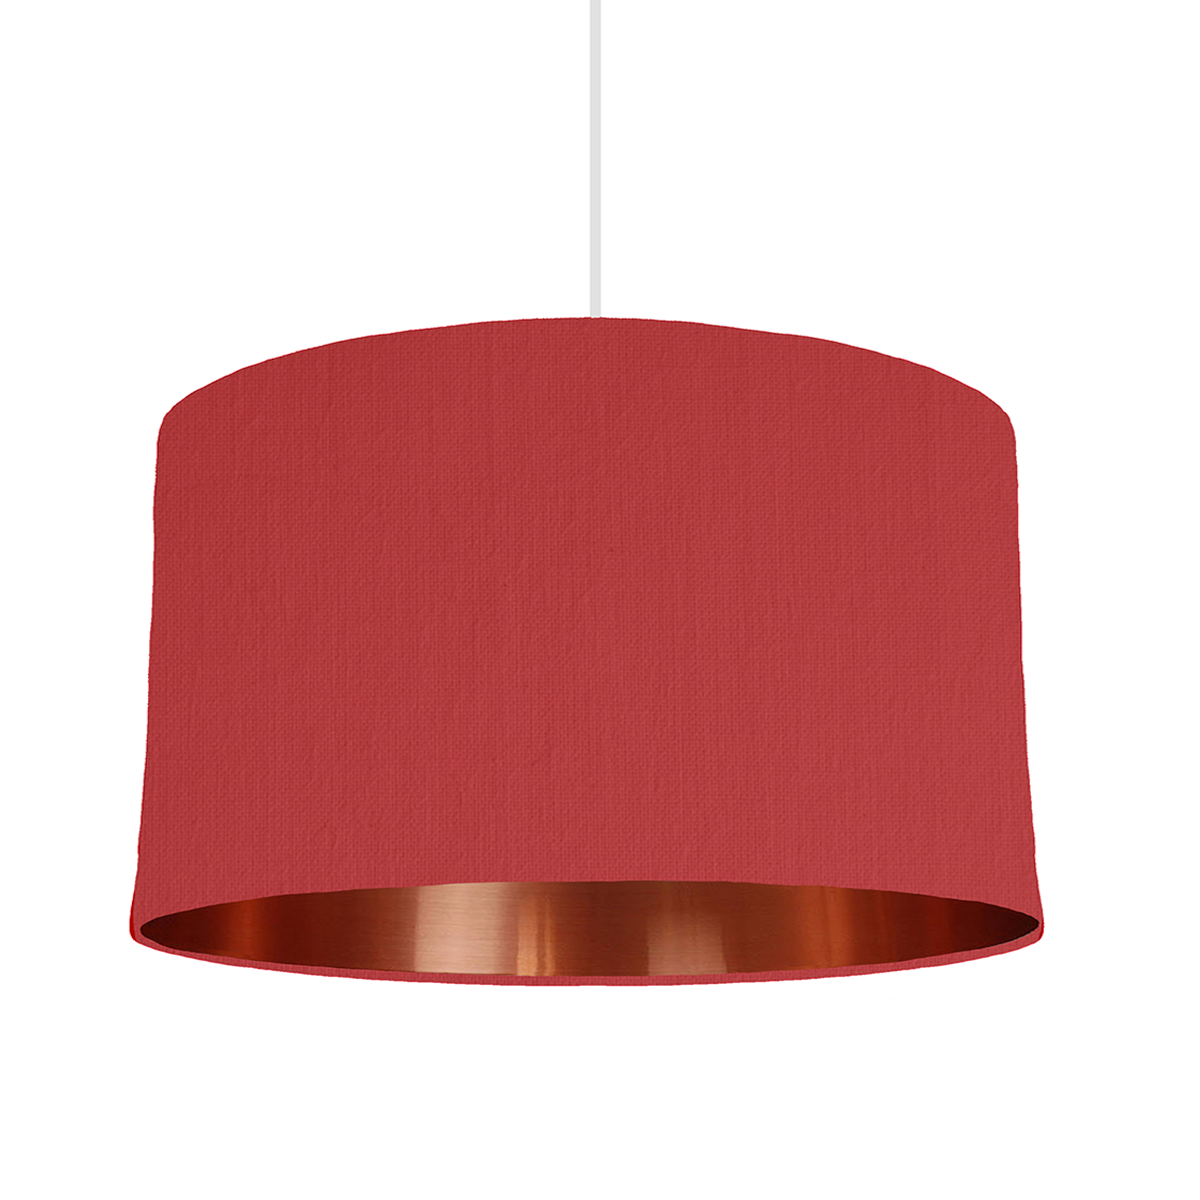 50 cm wide lampshade in red fabric with copper mirrored inside bymarie is a bespoke lampshade designer based in london specializing in custom made lampshades with mix match lining colours aloadofball Image collections